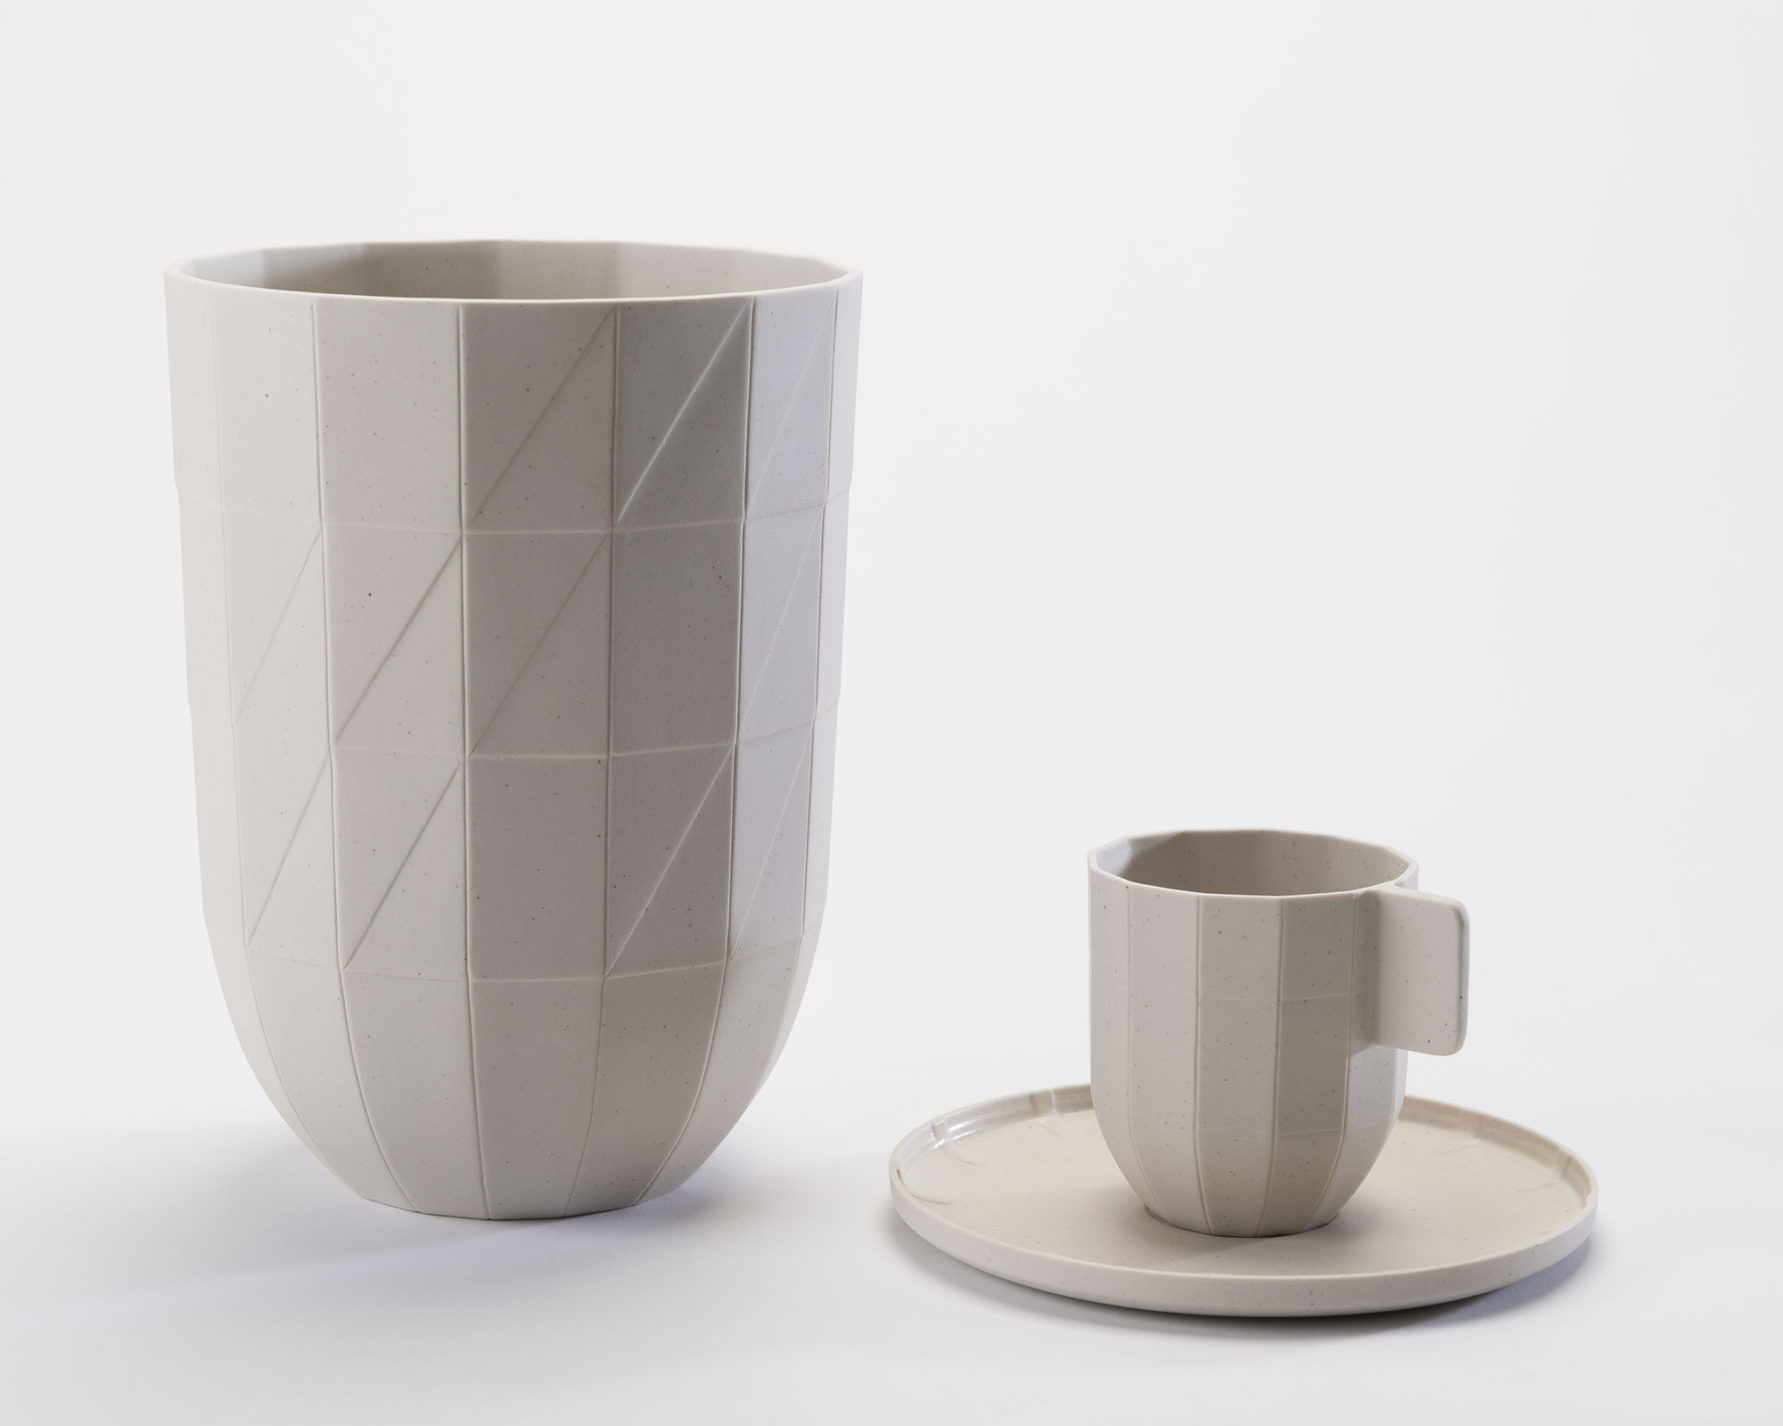 Large mug, small coffee cup and saucer. Each piece is beige porcelain and made to look like it is made of folded paper.